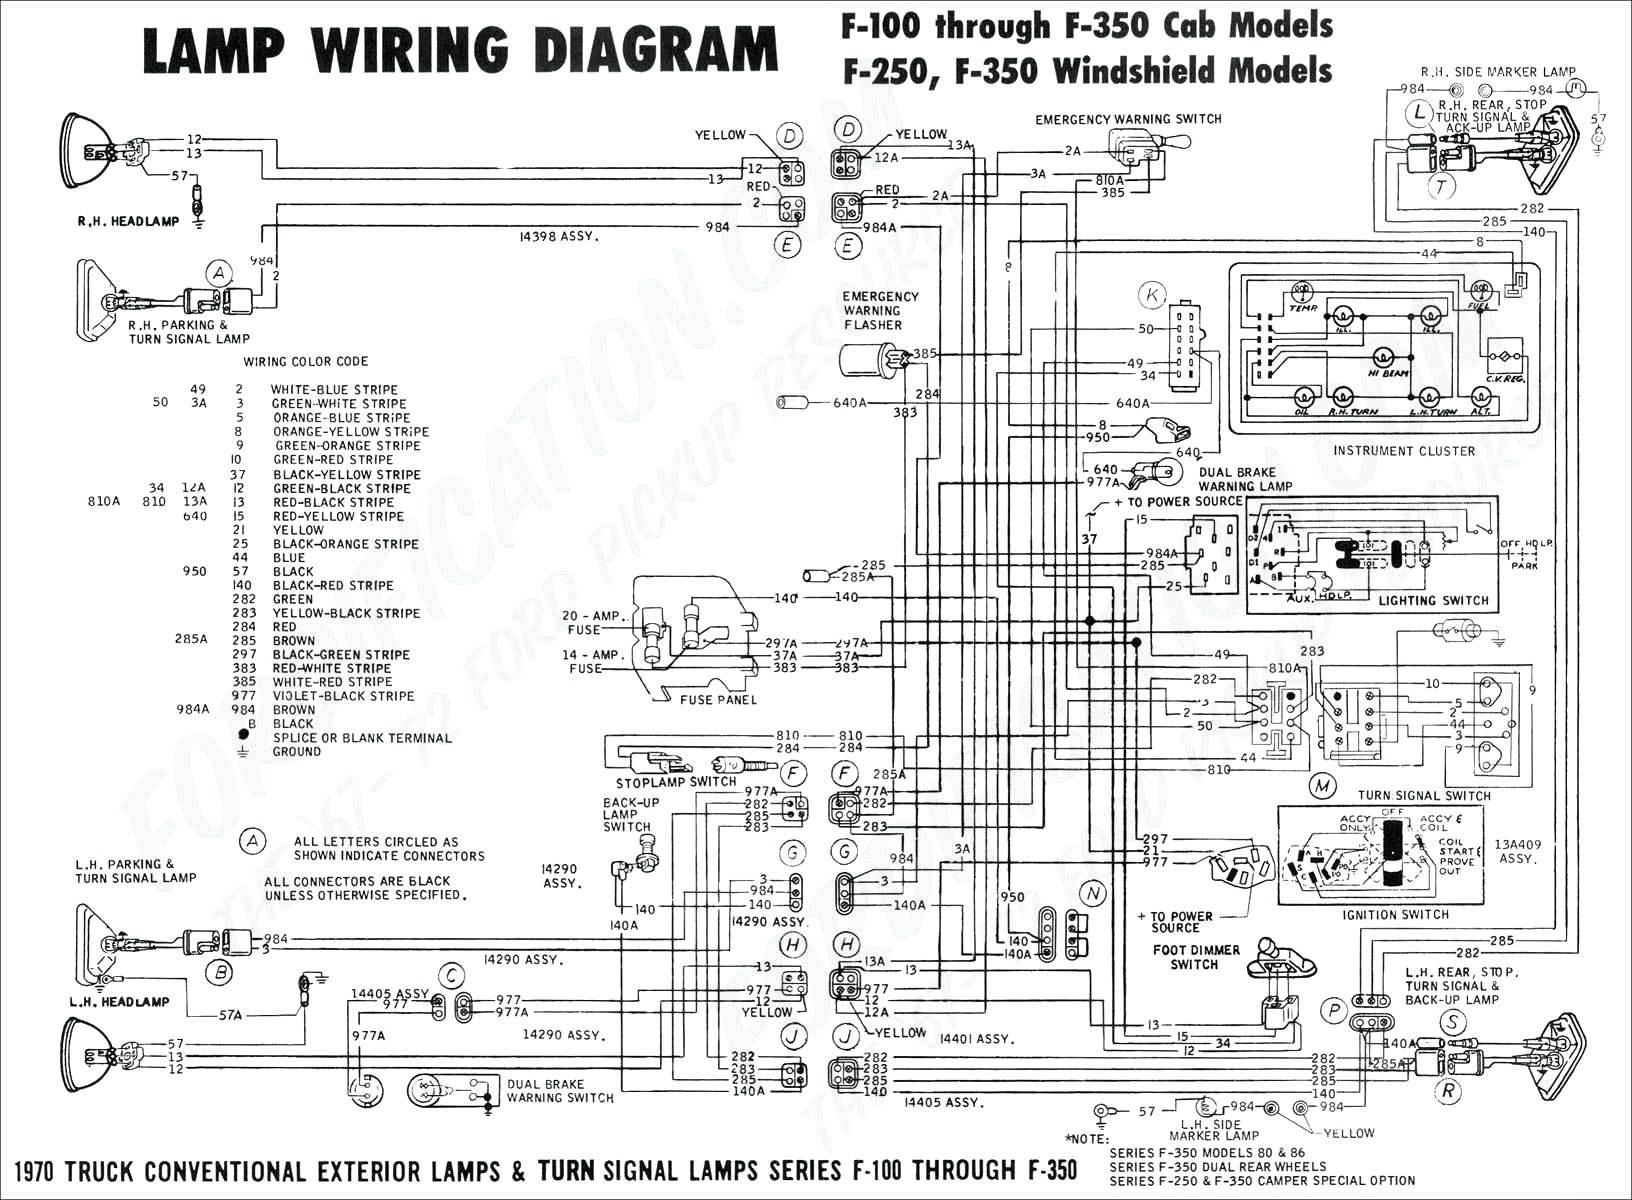 1999 Mercury Sable Engine Diagram 1995 Nissan Maxima Engine Diagram Experts Wiring Diagram • Of 1999 Mercury Sable Engine Diagram